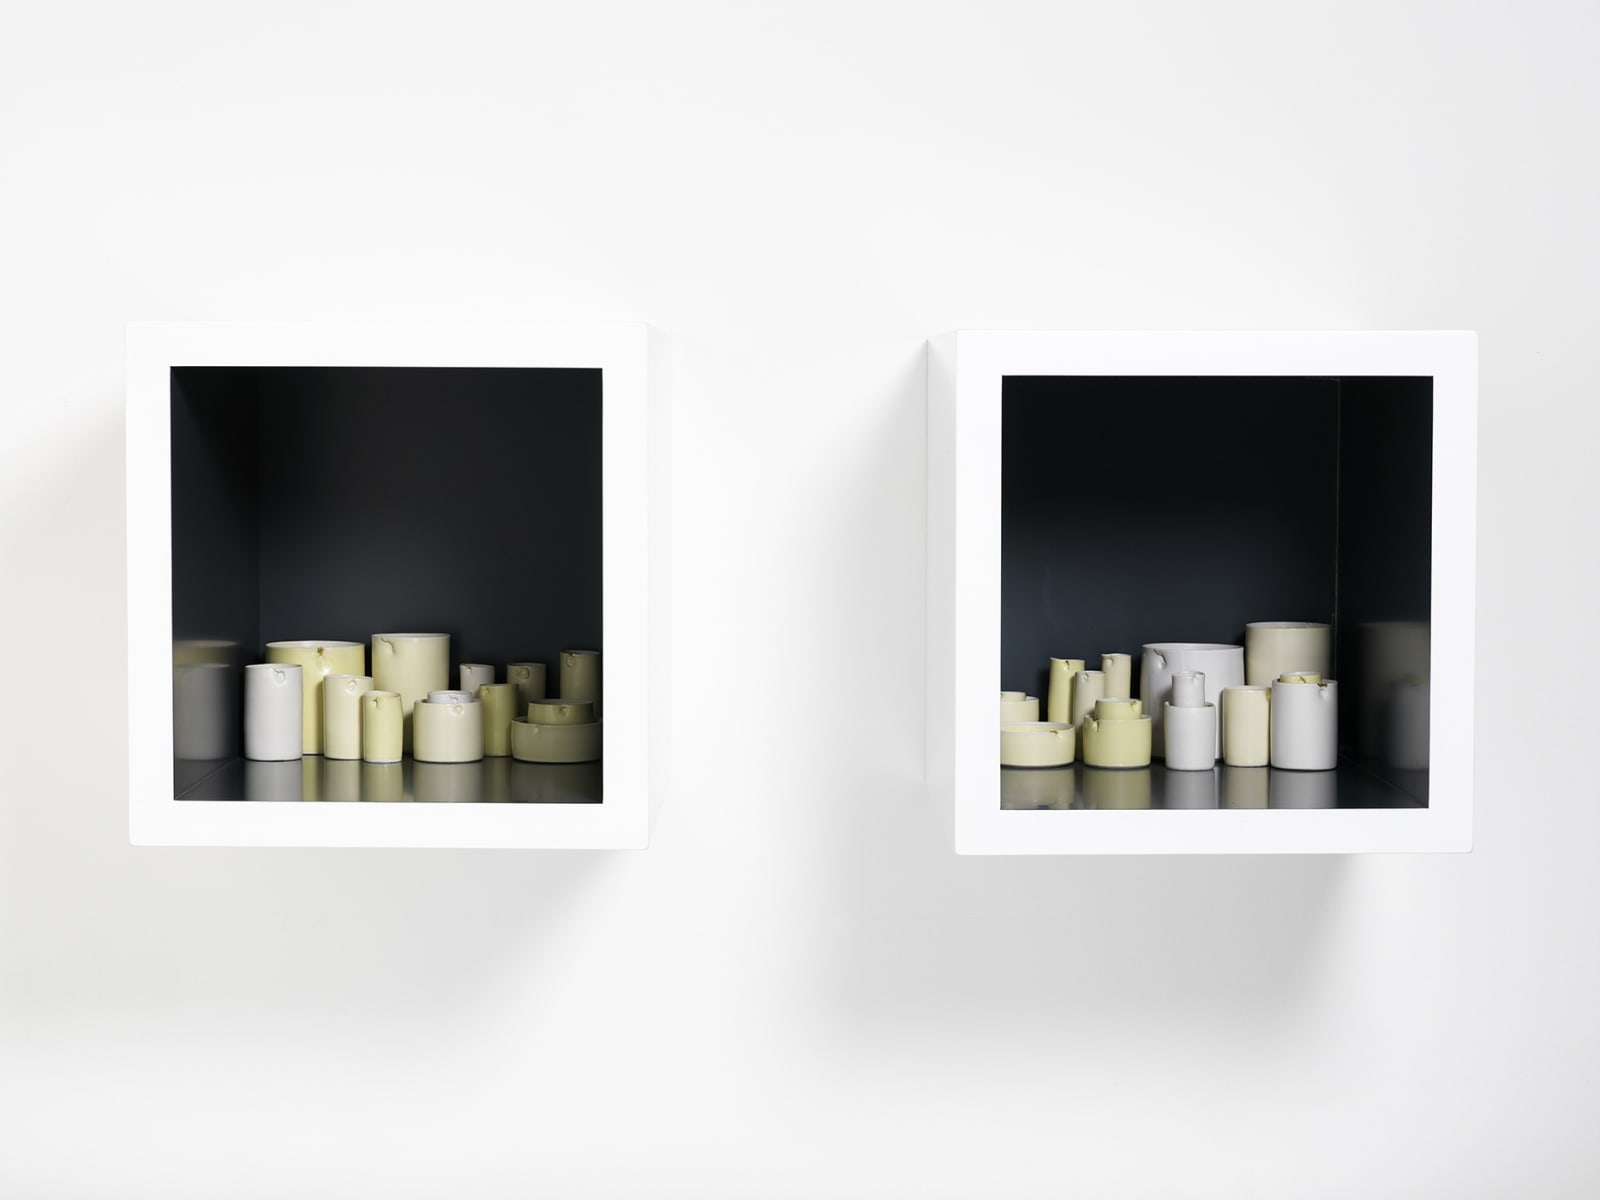 Edmund DE WAAL (b.1964) Aurea, 2007 Two lacquer cabinets containing 28 thrown porcelain vessels in white and yellow glazes with gold leaf Cabinets each 13 ¾ x 13 ¾ x 17 ¾ inches / 35 x 35 x 45 cm